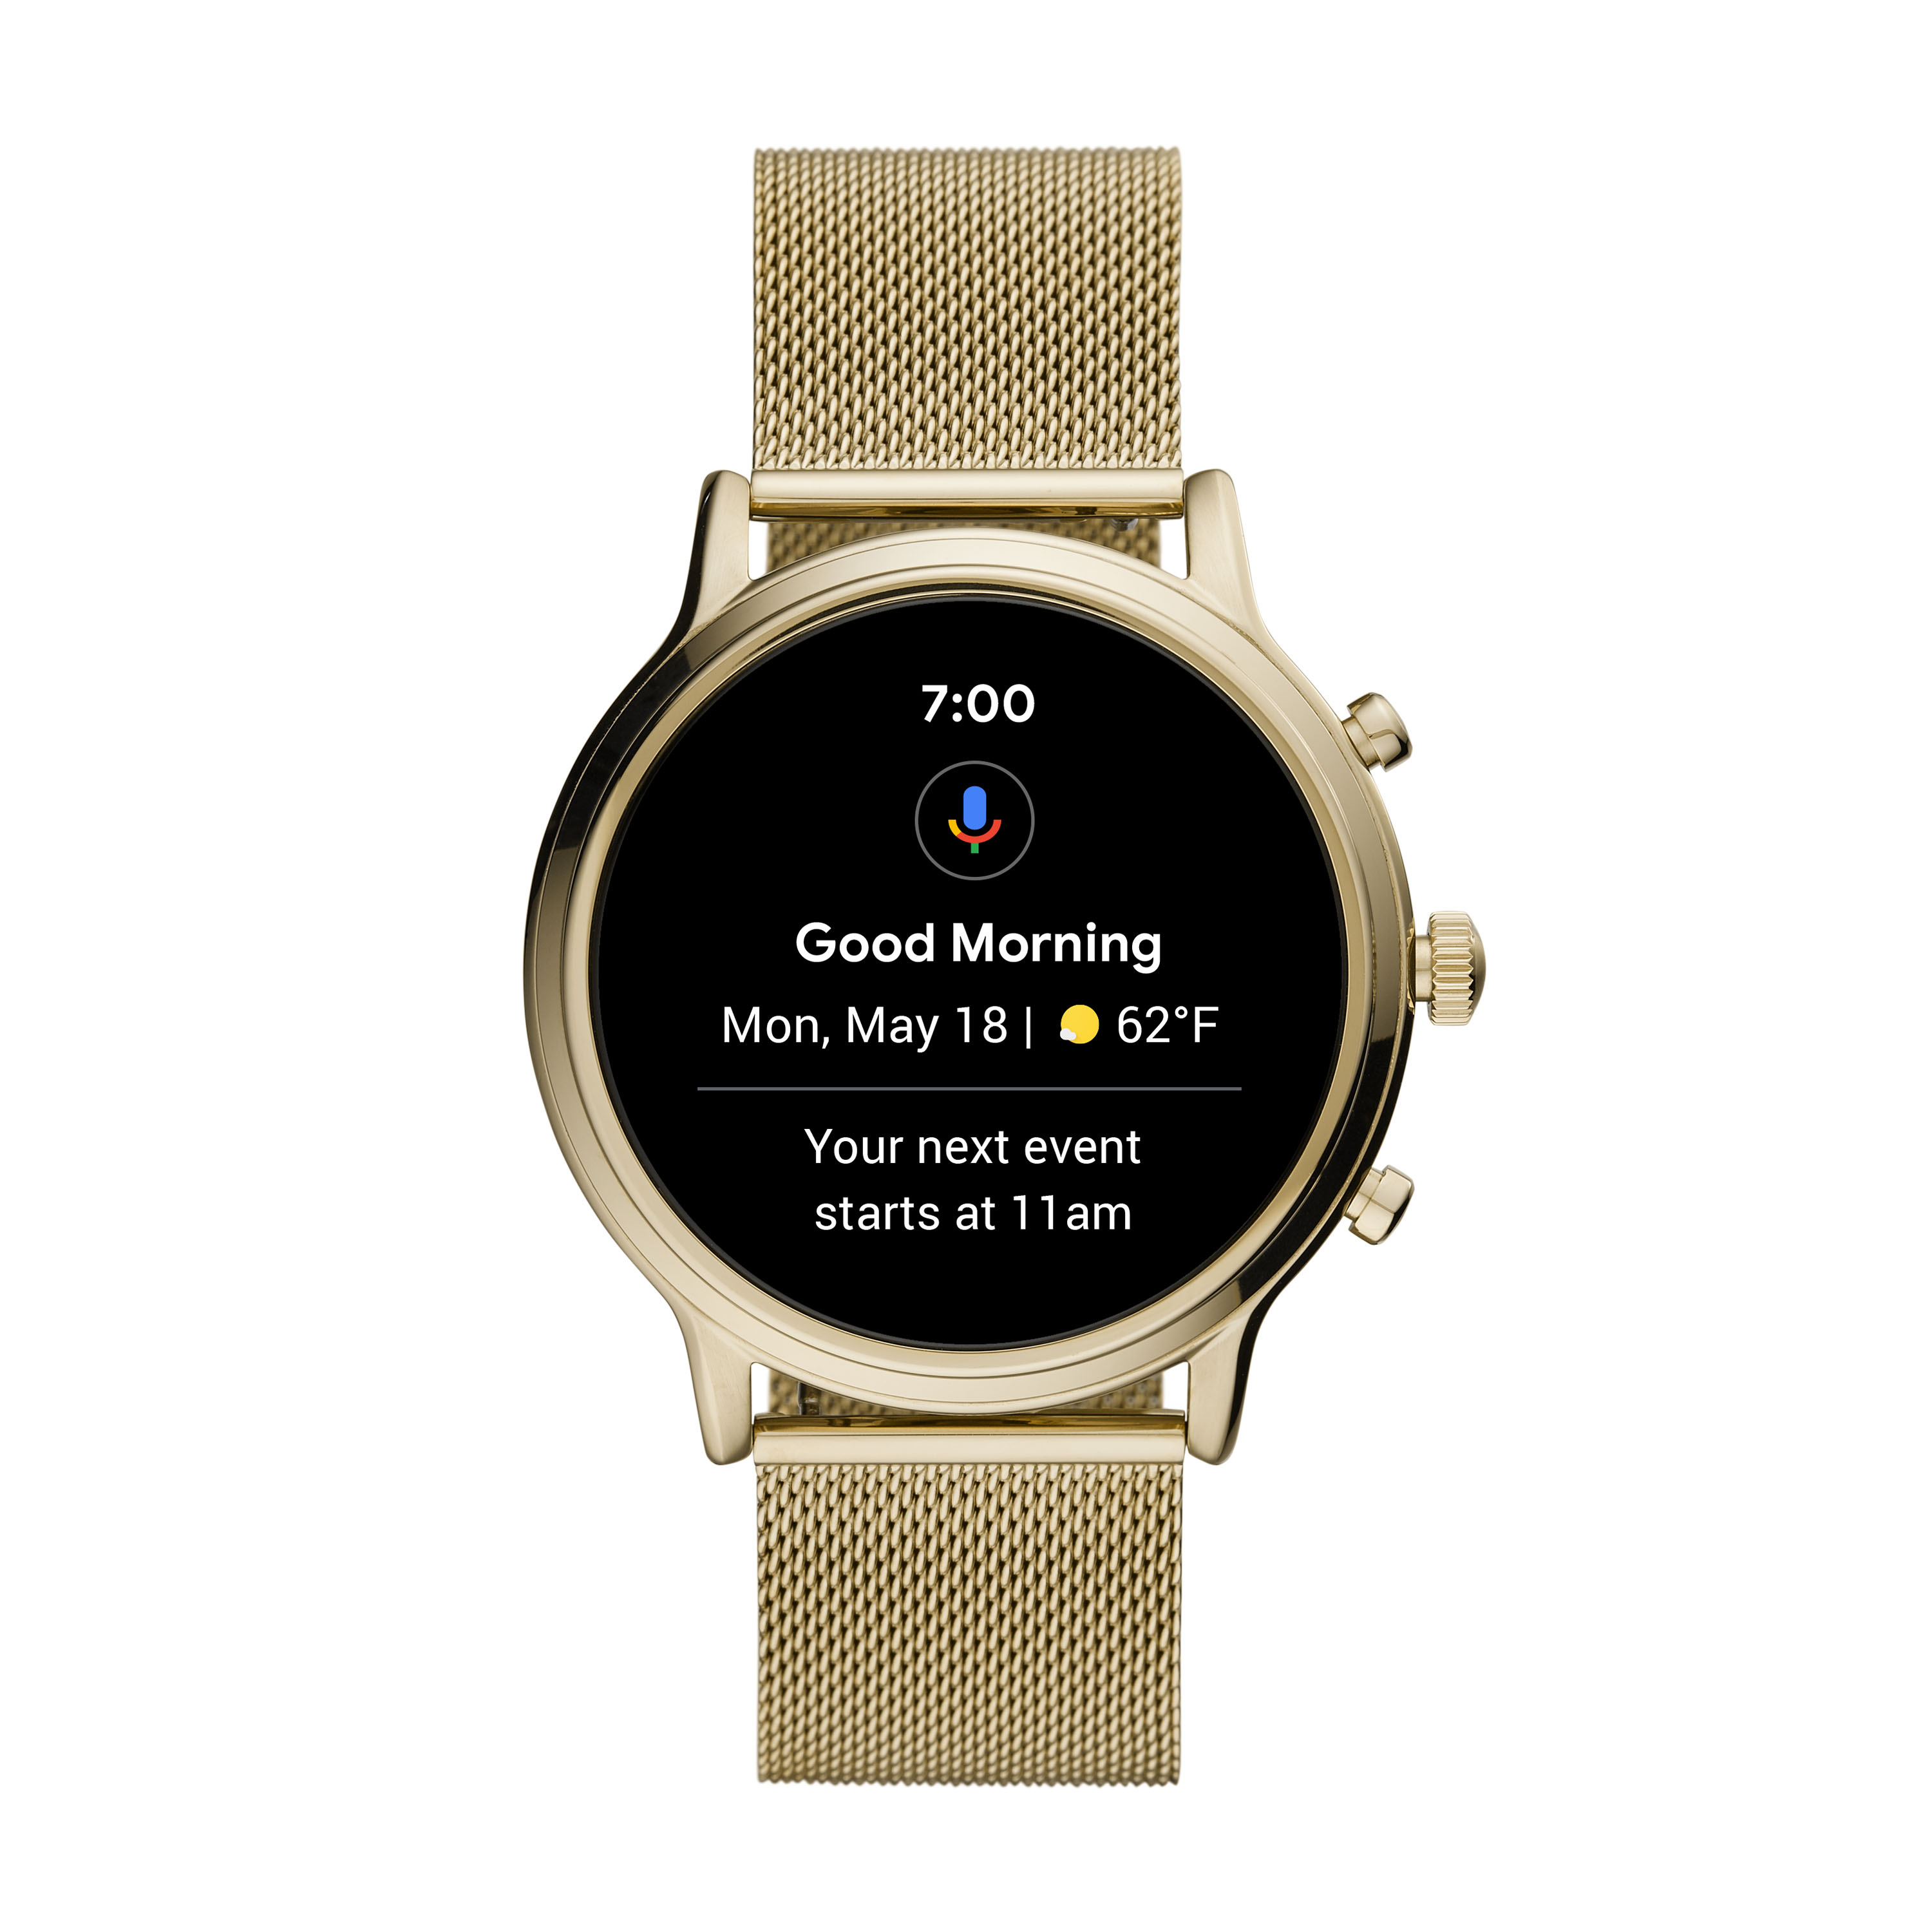 Fossil Gen 5 smartwatch at CES 2020